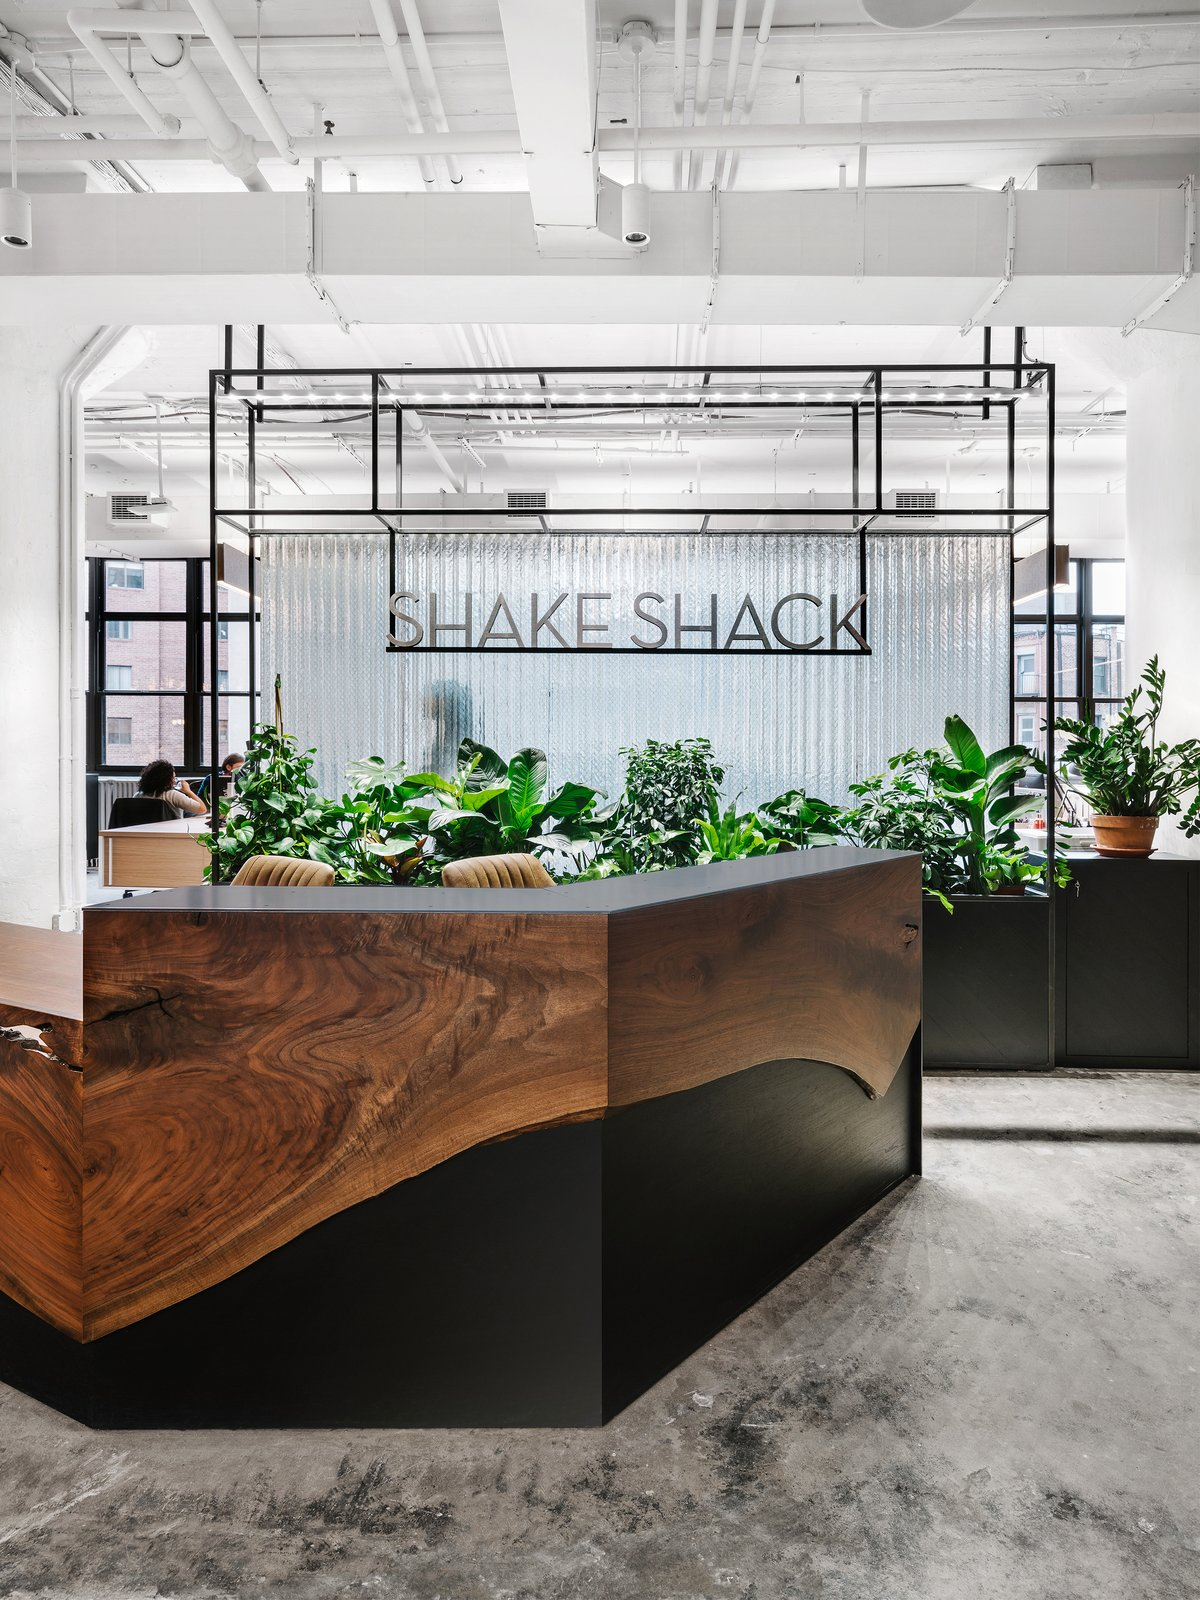 Shake Shack's NYC Headquarters Is a Triple-Decker Dripping With Stylish Design